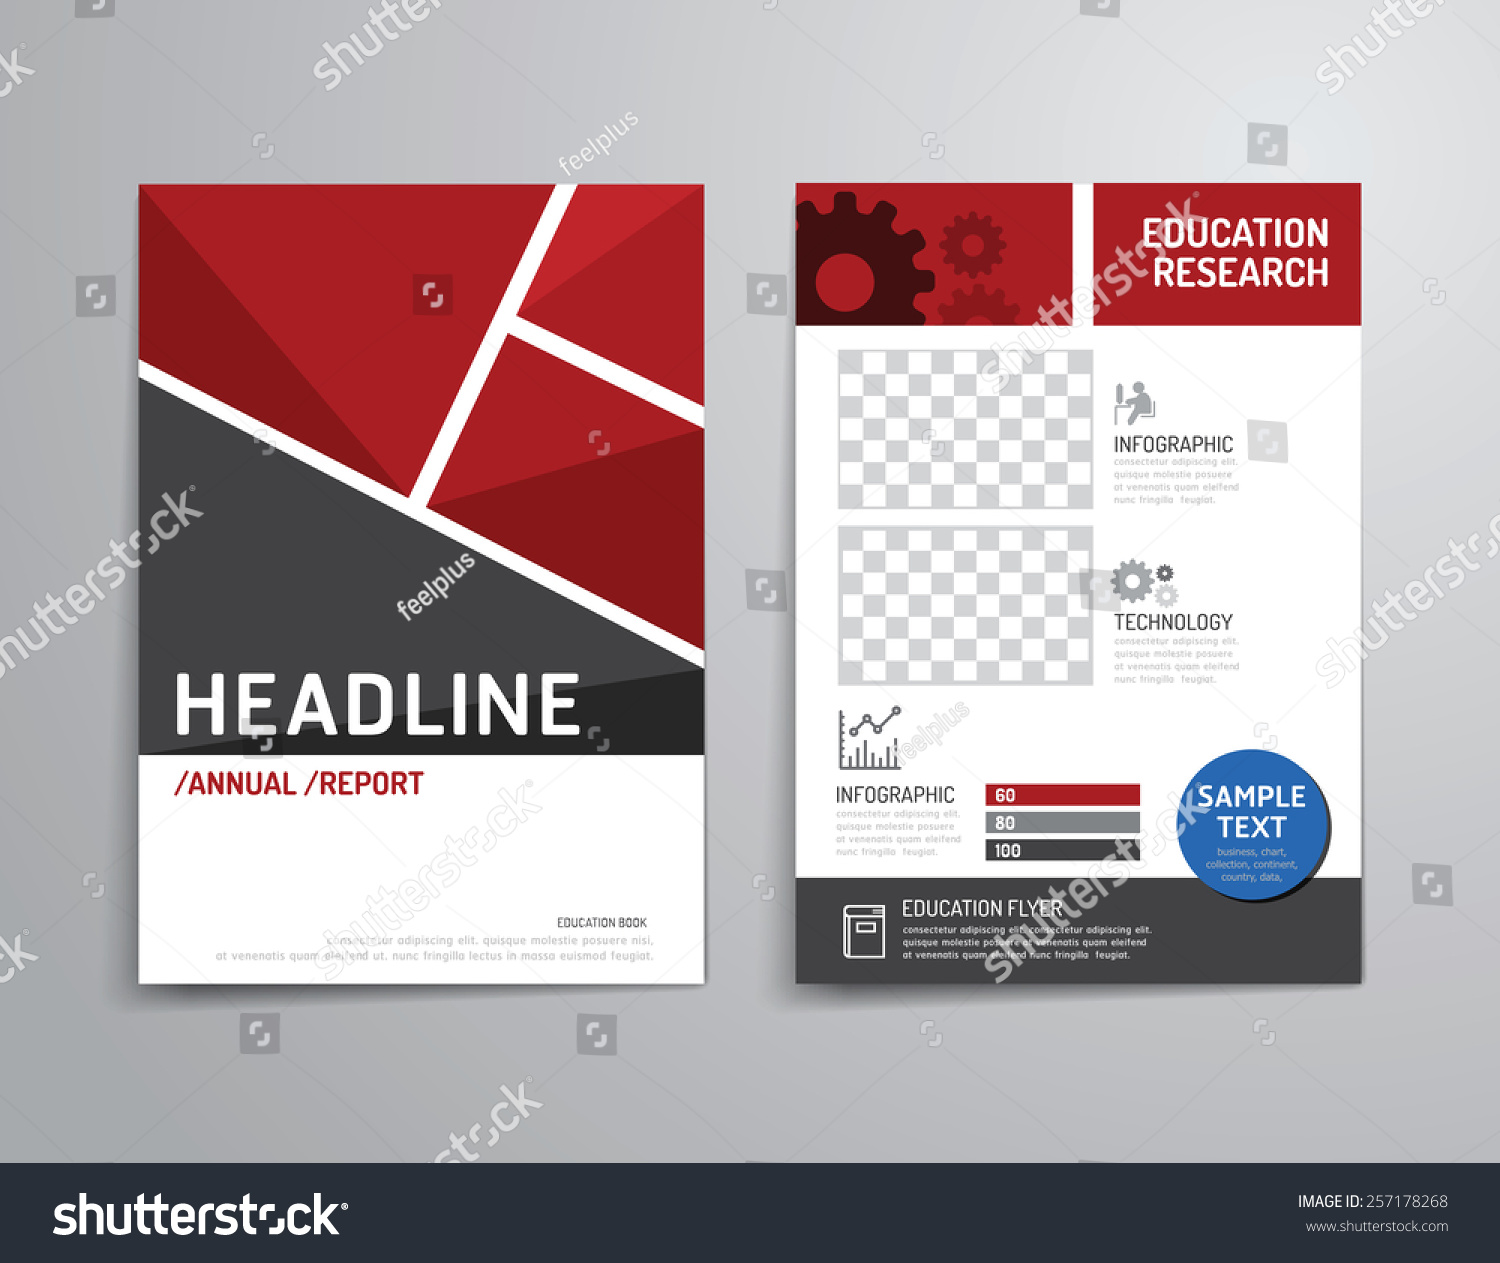 Poster design free download - Poster Design Free Template Collection Education Poster Design Psd Free Download Chatorioles